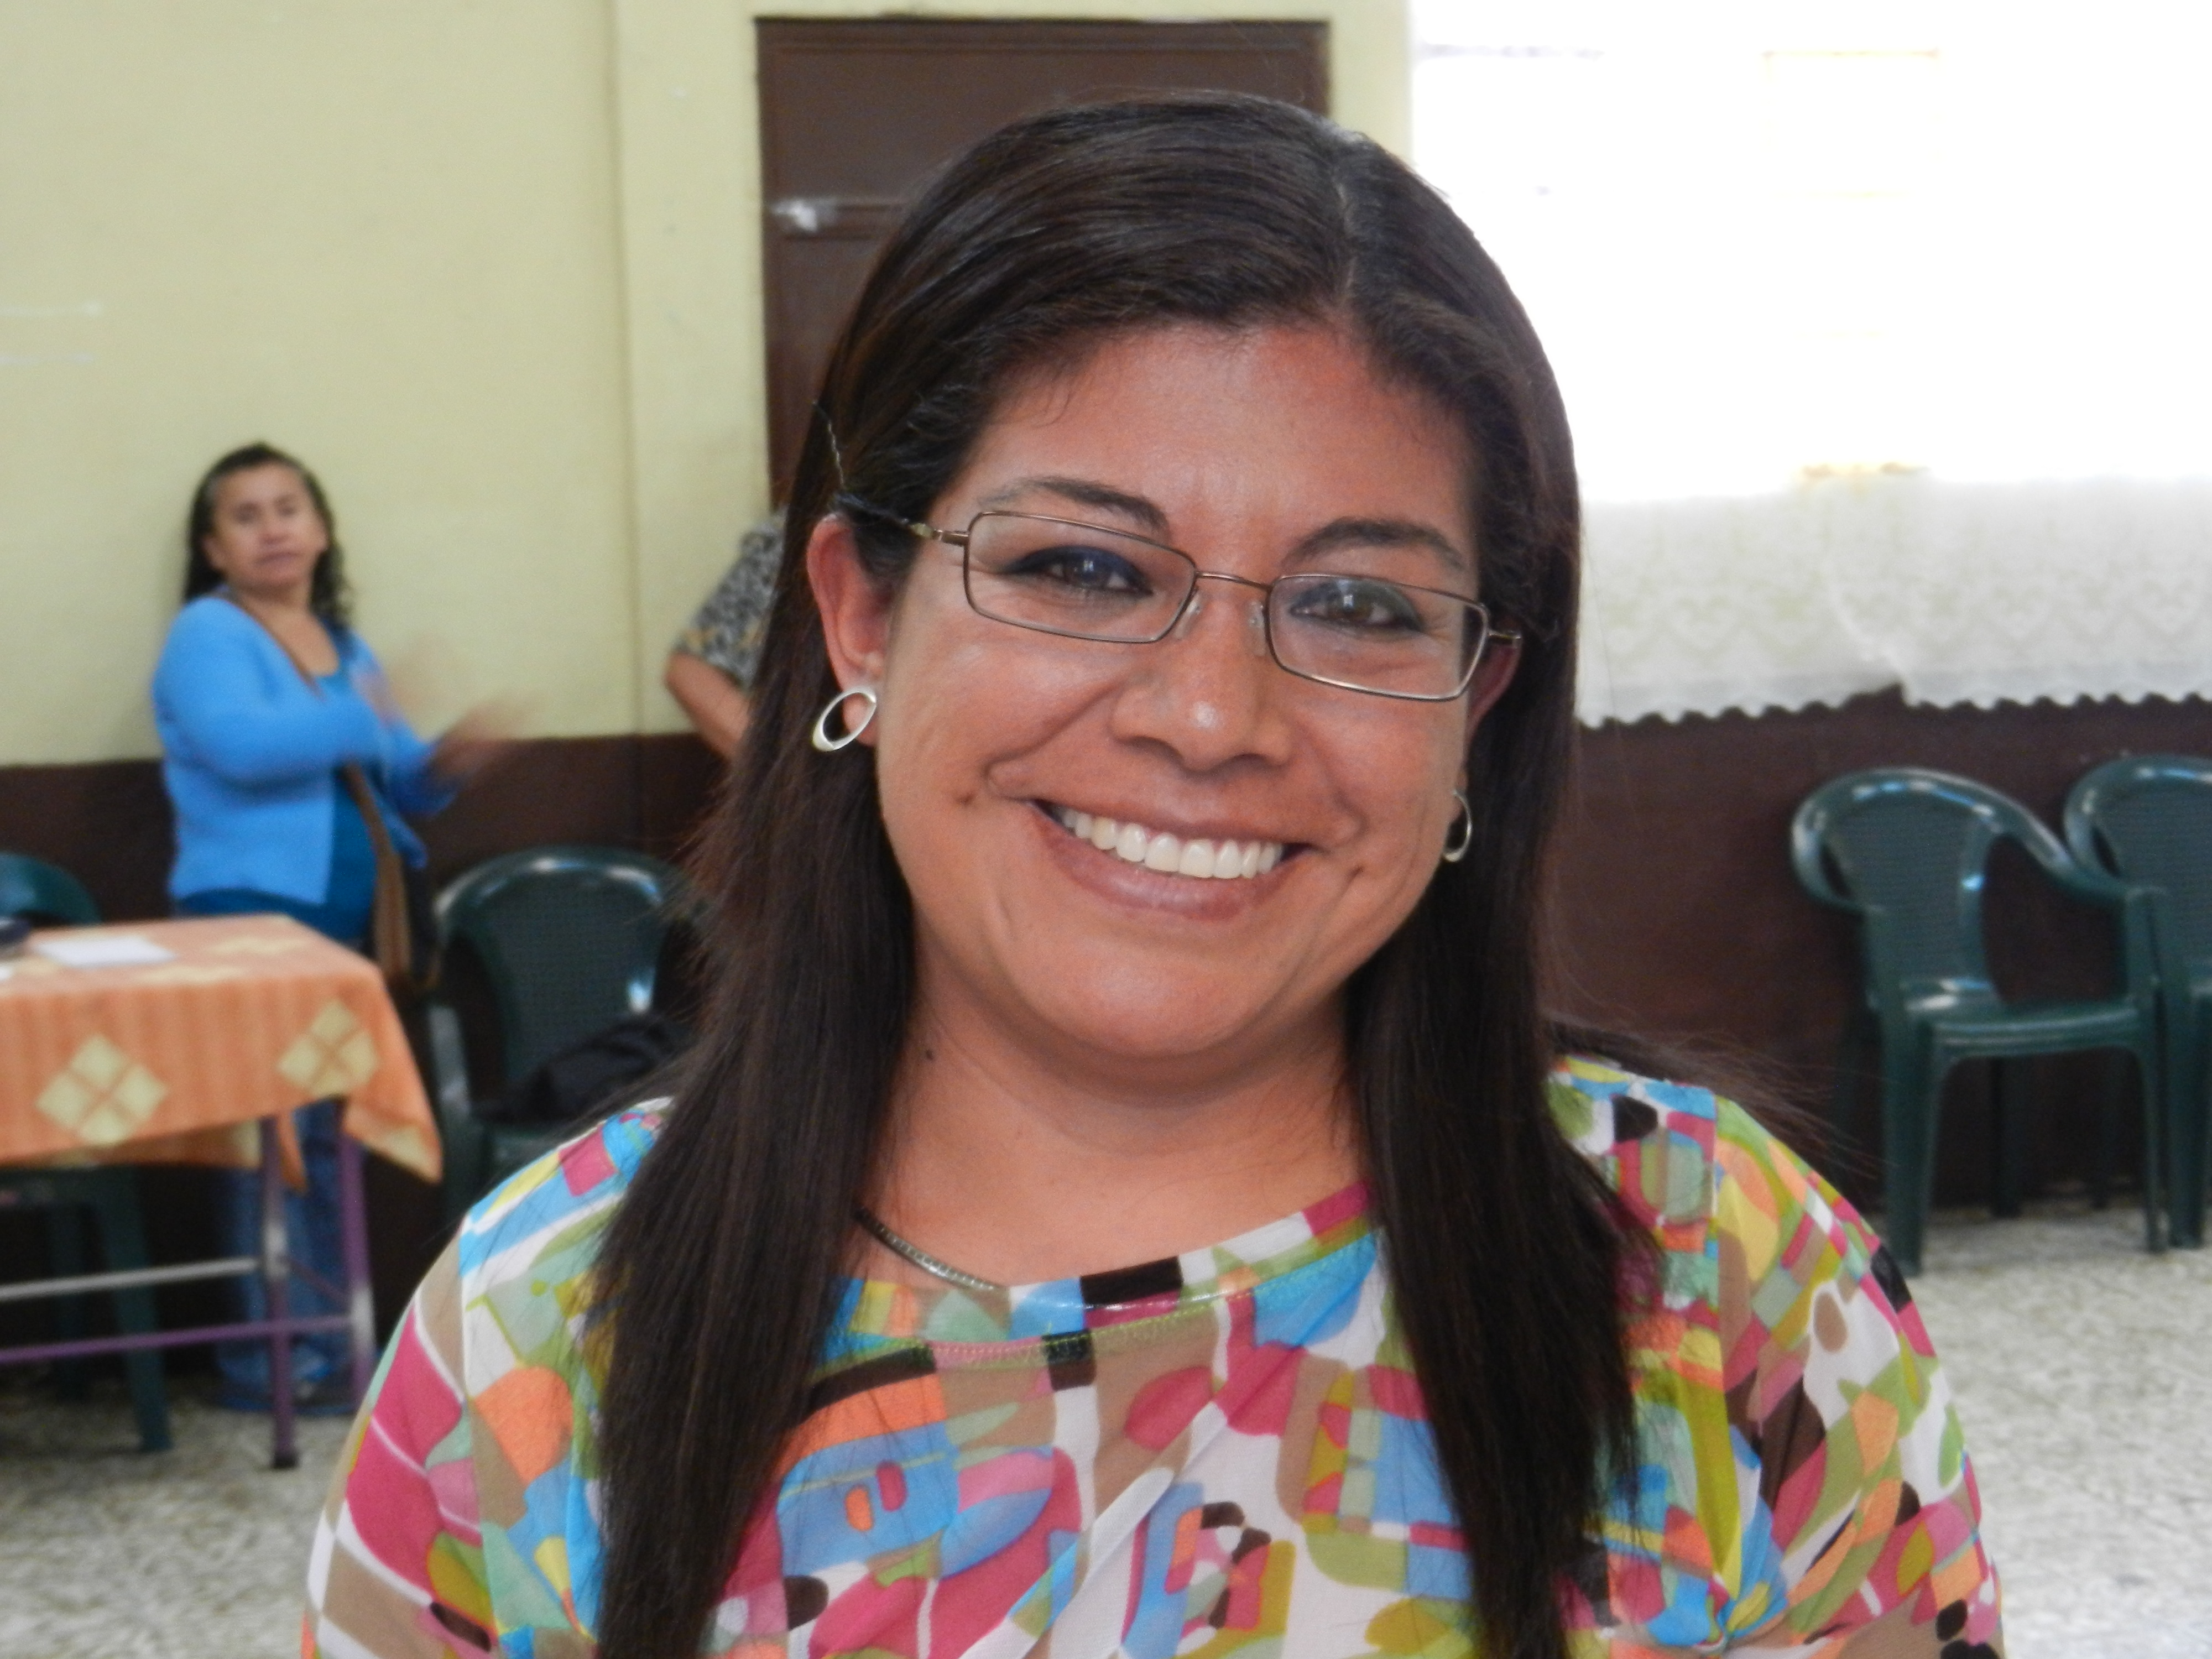 A woman smiling brightly with her new eyeglasses.